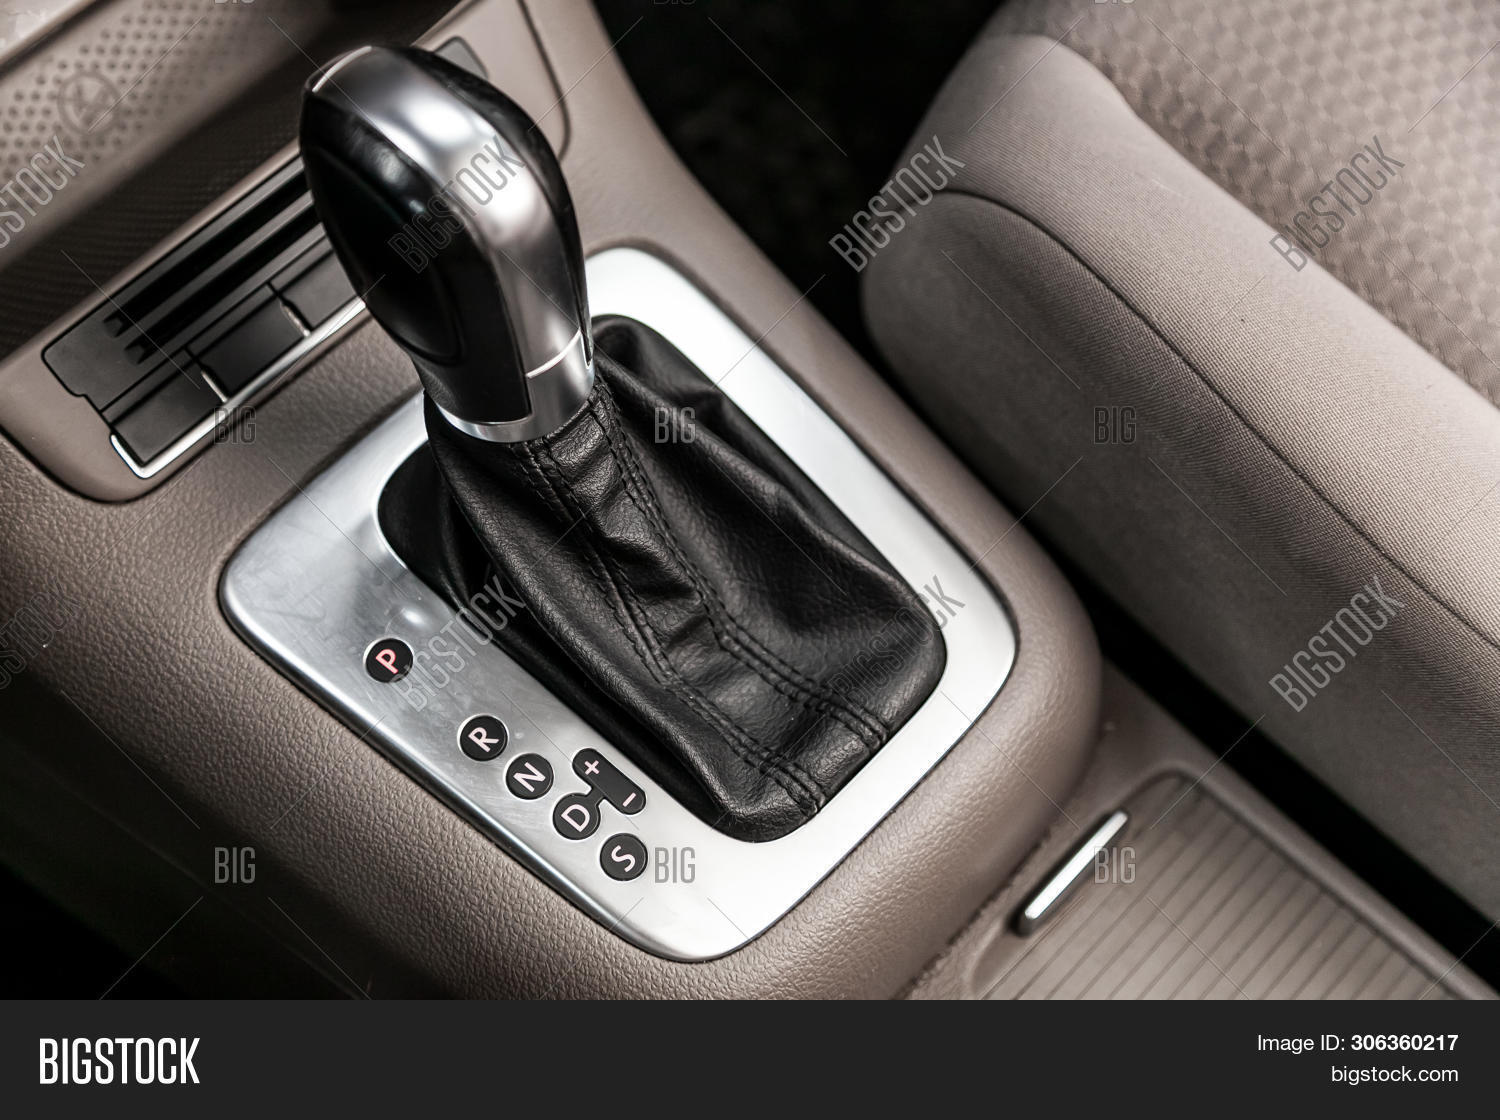 Automatic Gear Stick Image & Photo (Free Trial) | Bigstock